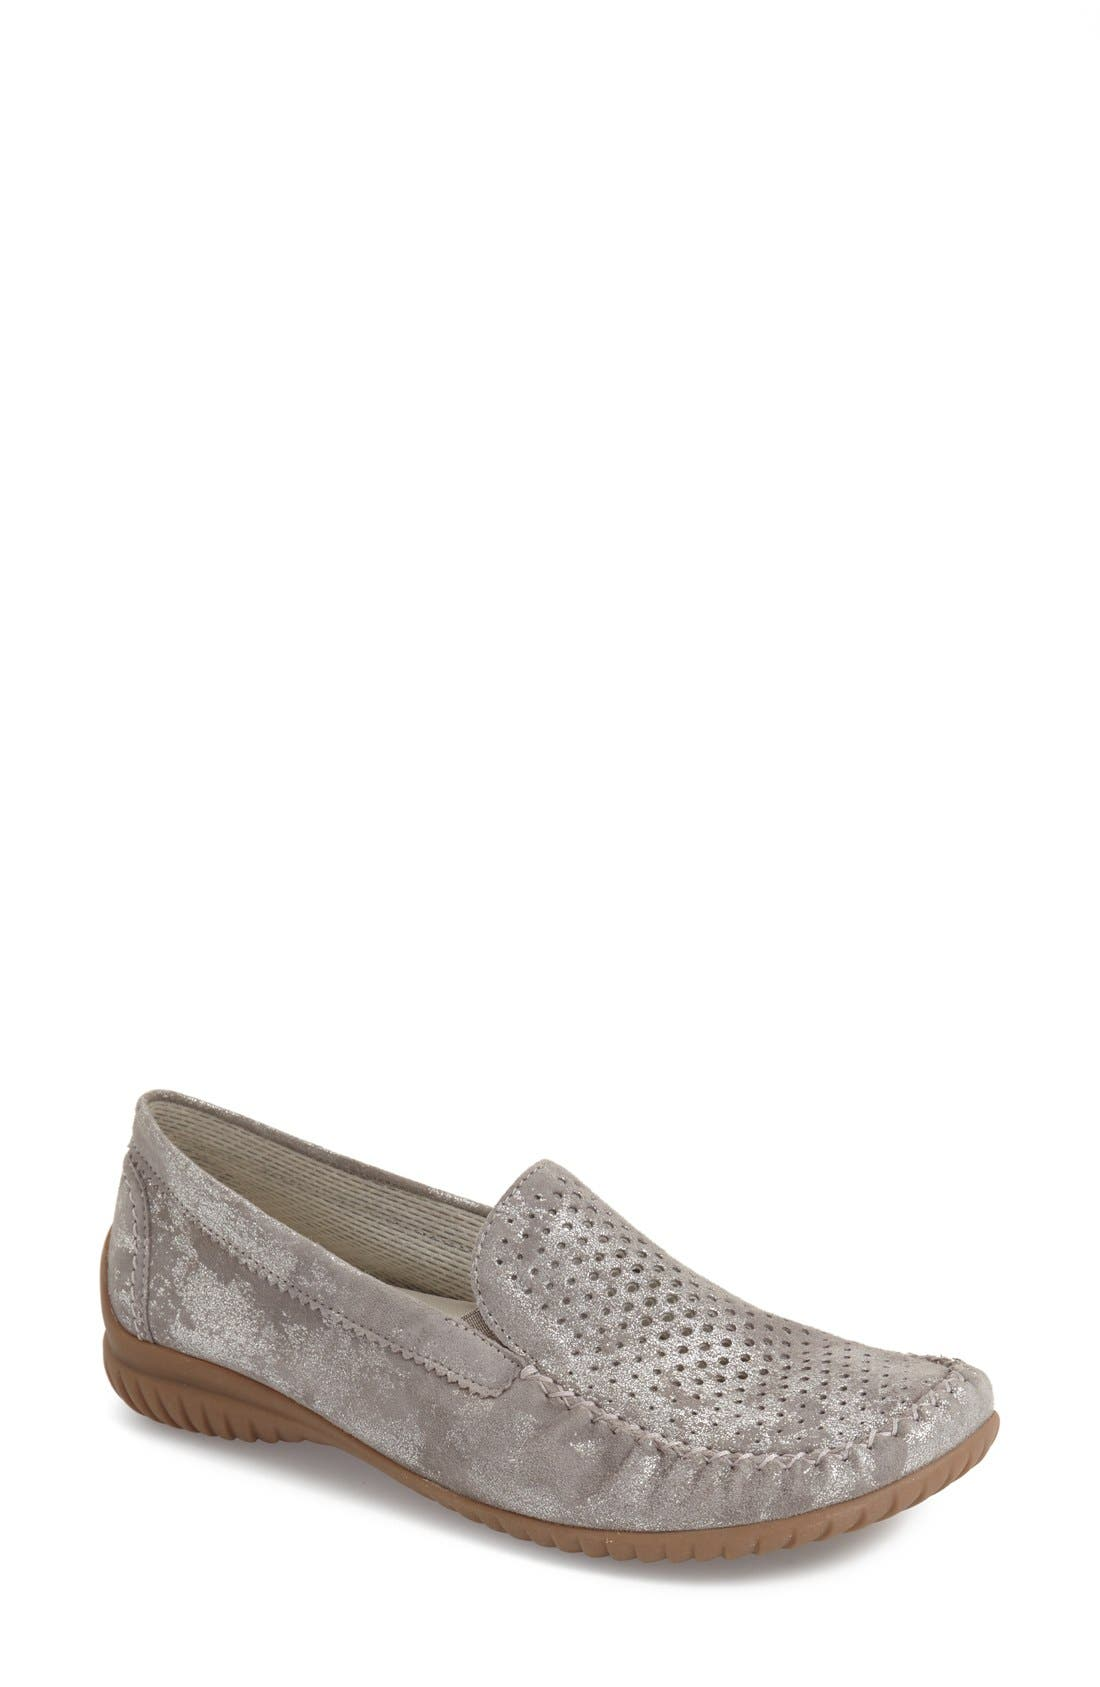 Gabor Perforated Loafer (Women)